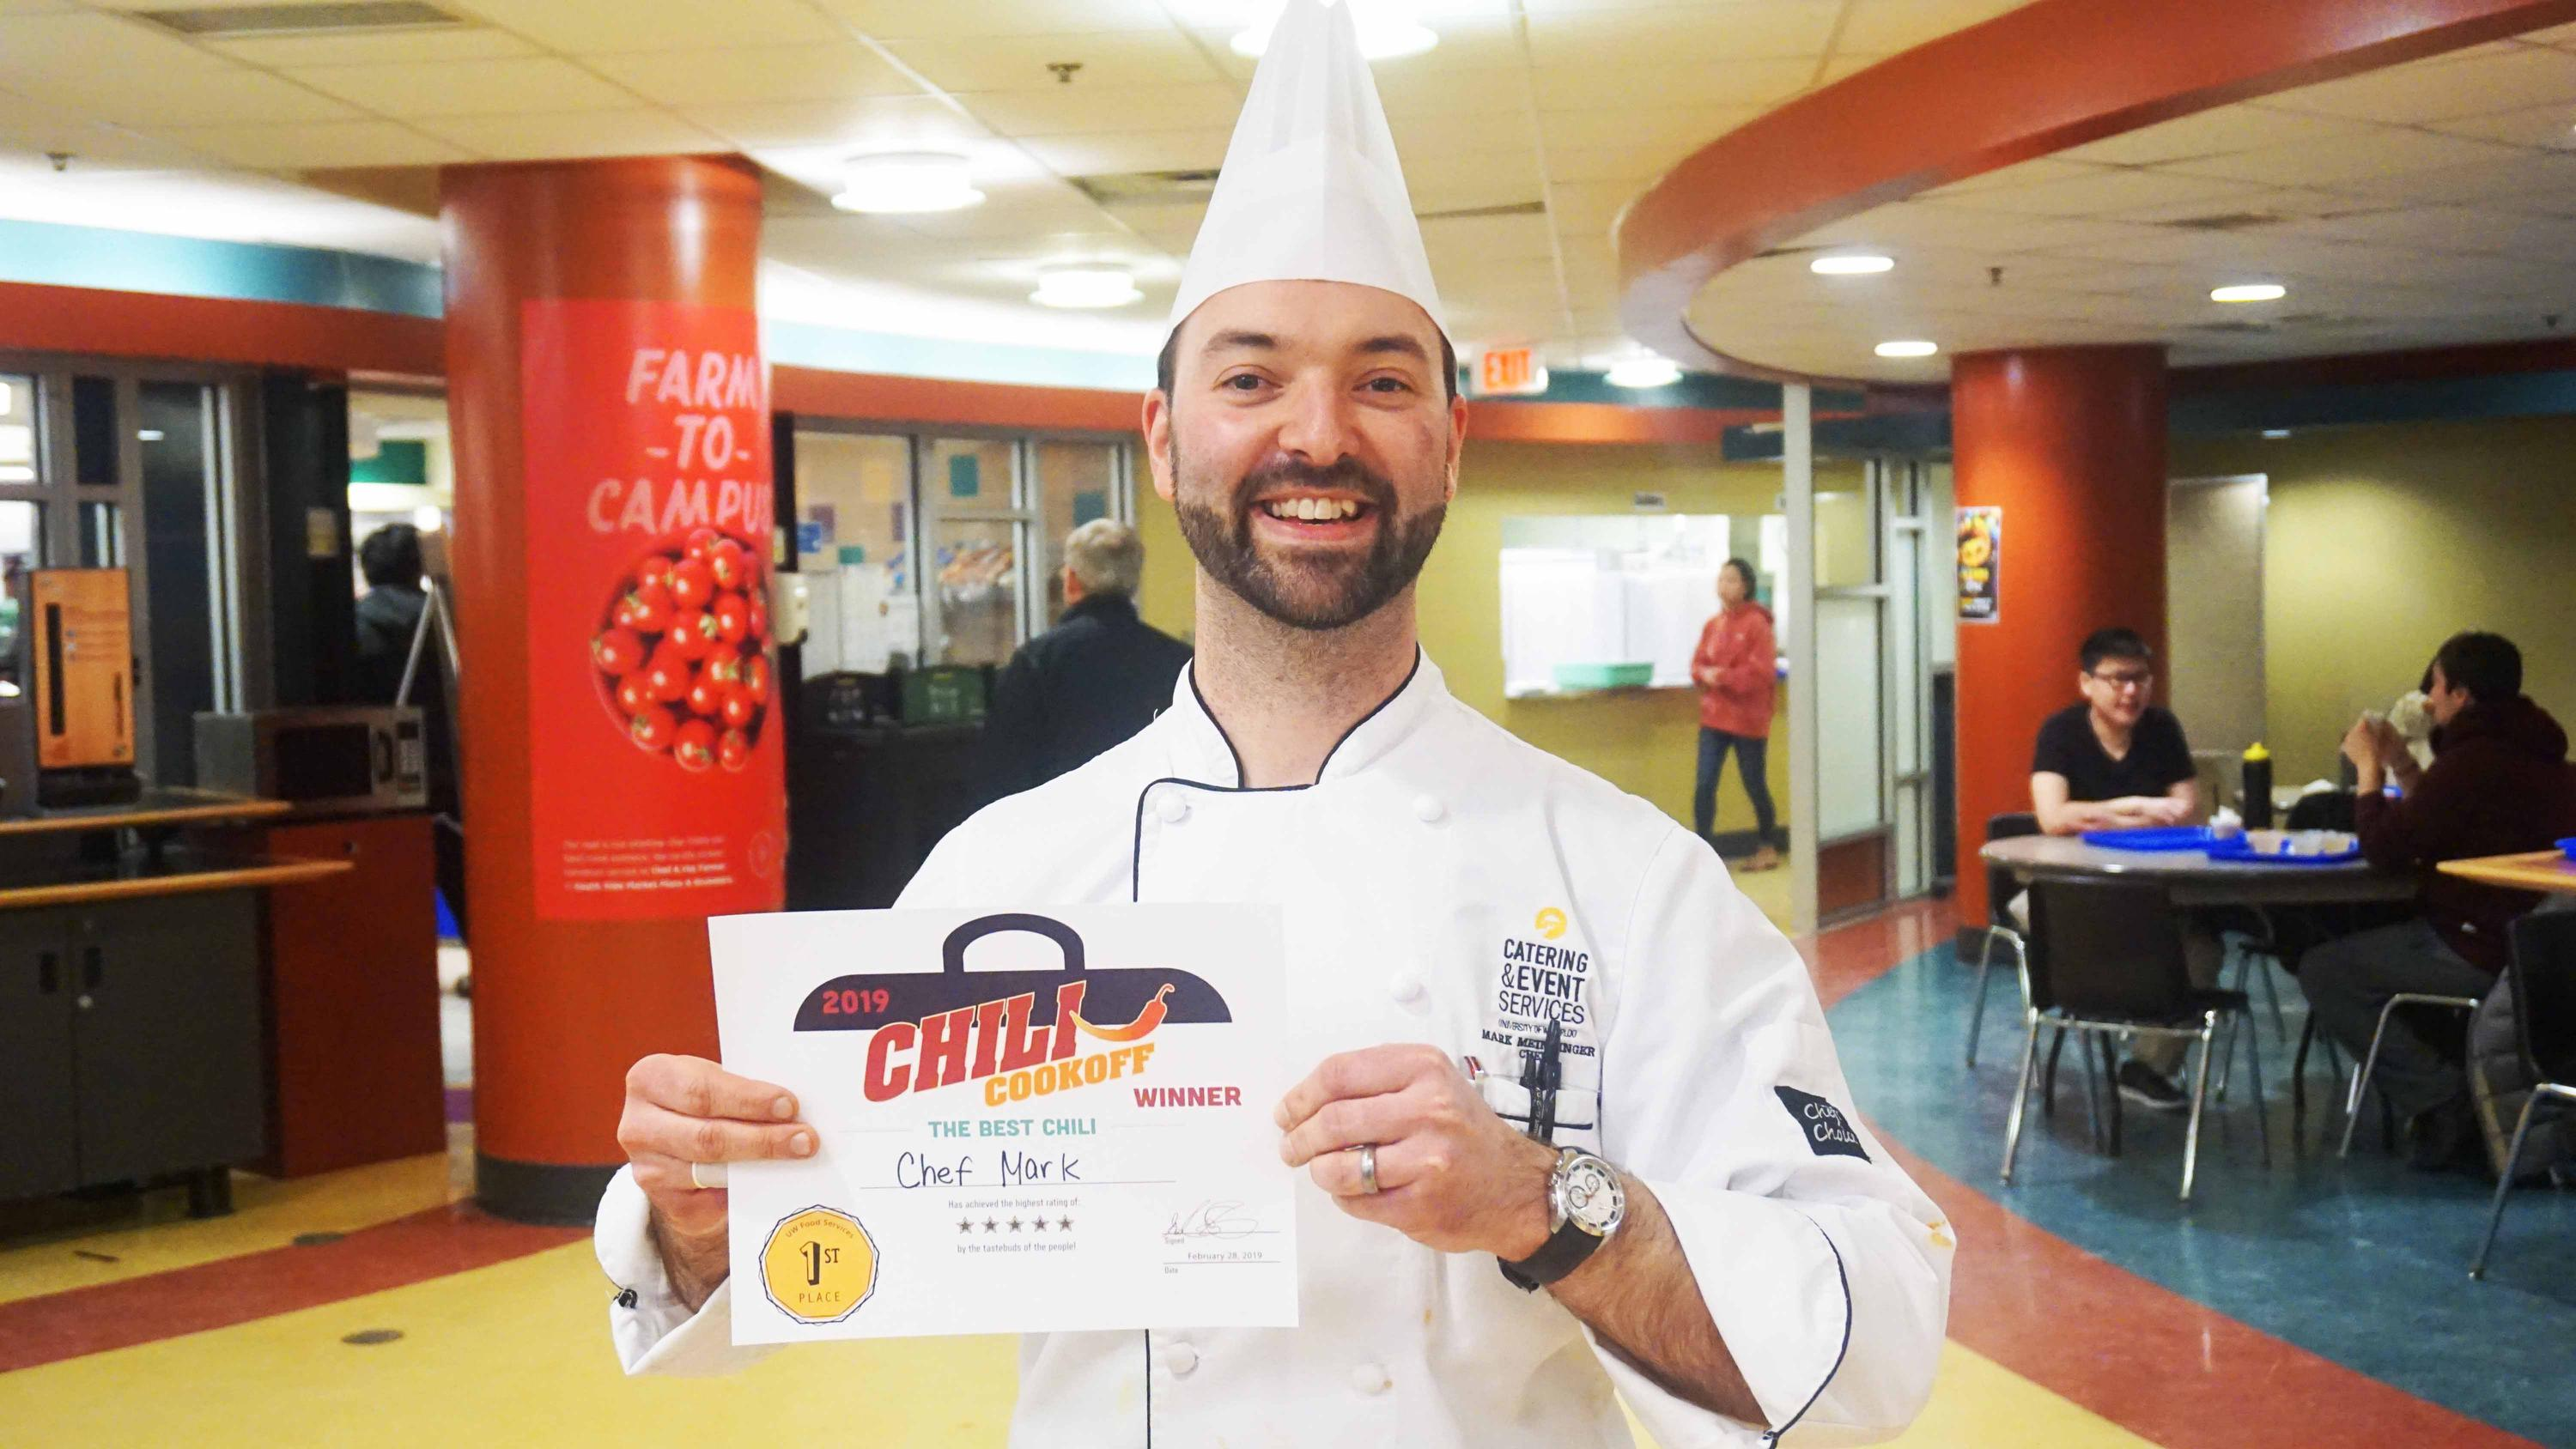 Chef holding certificate